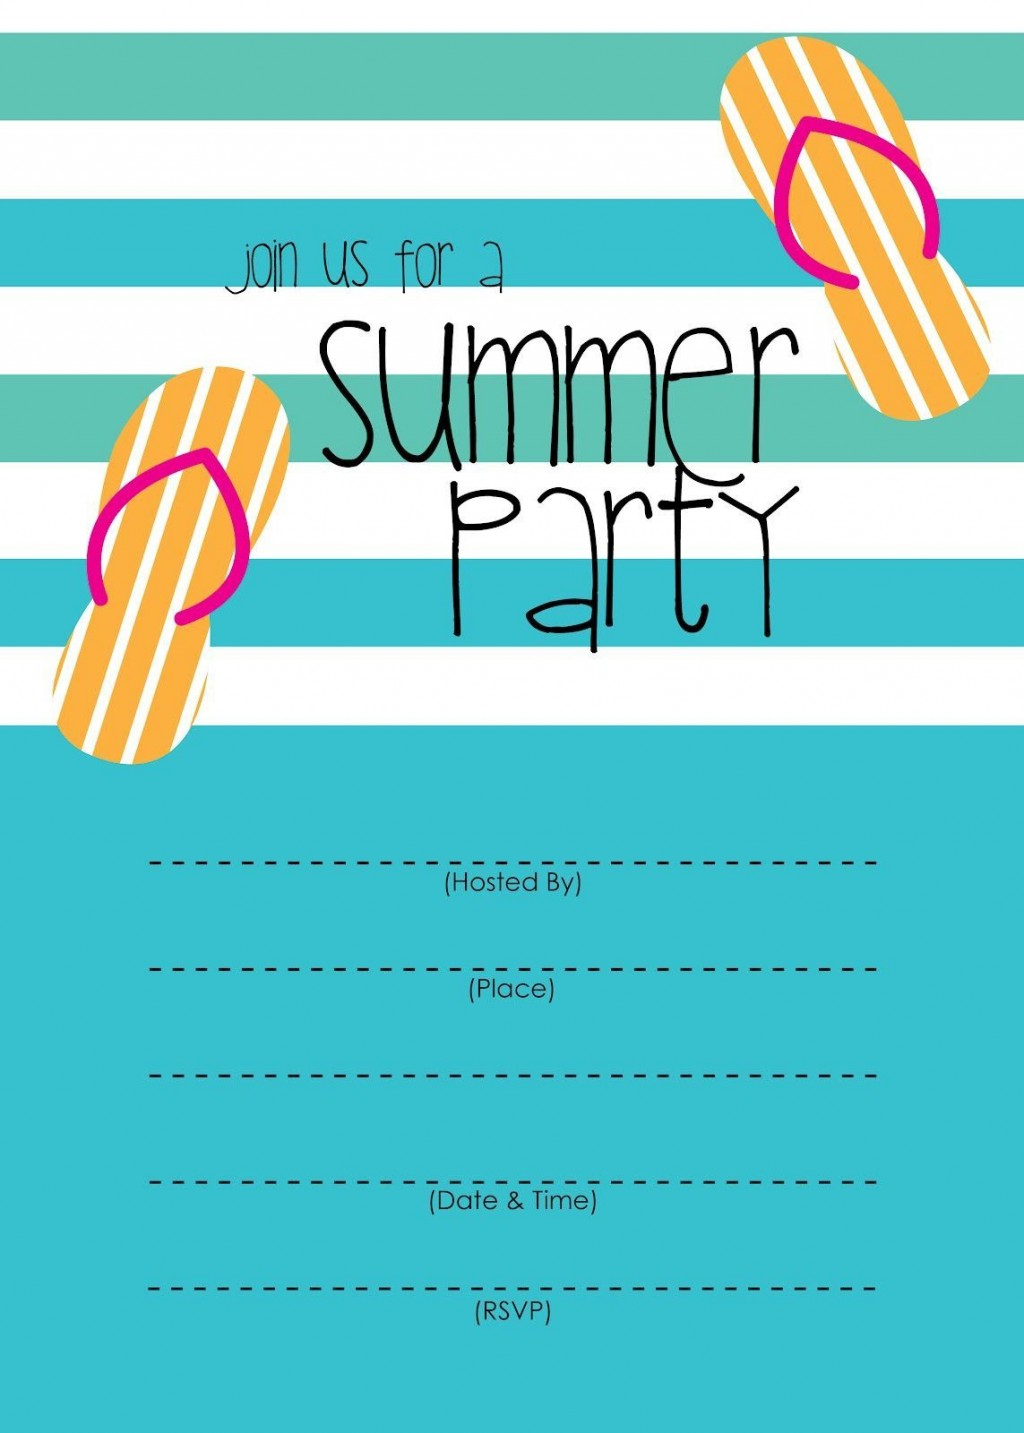 003 Excellent Pool Party Invitation Template Free Idea  Downloadable Printable SwimmingLarge